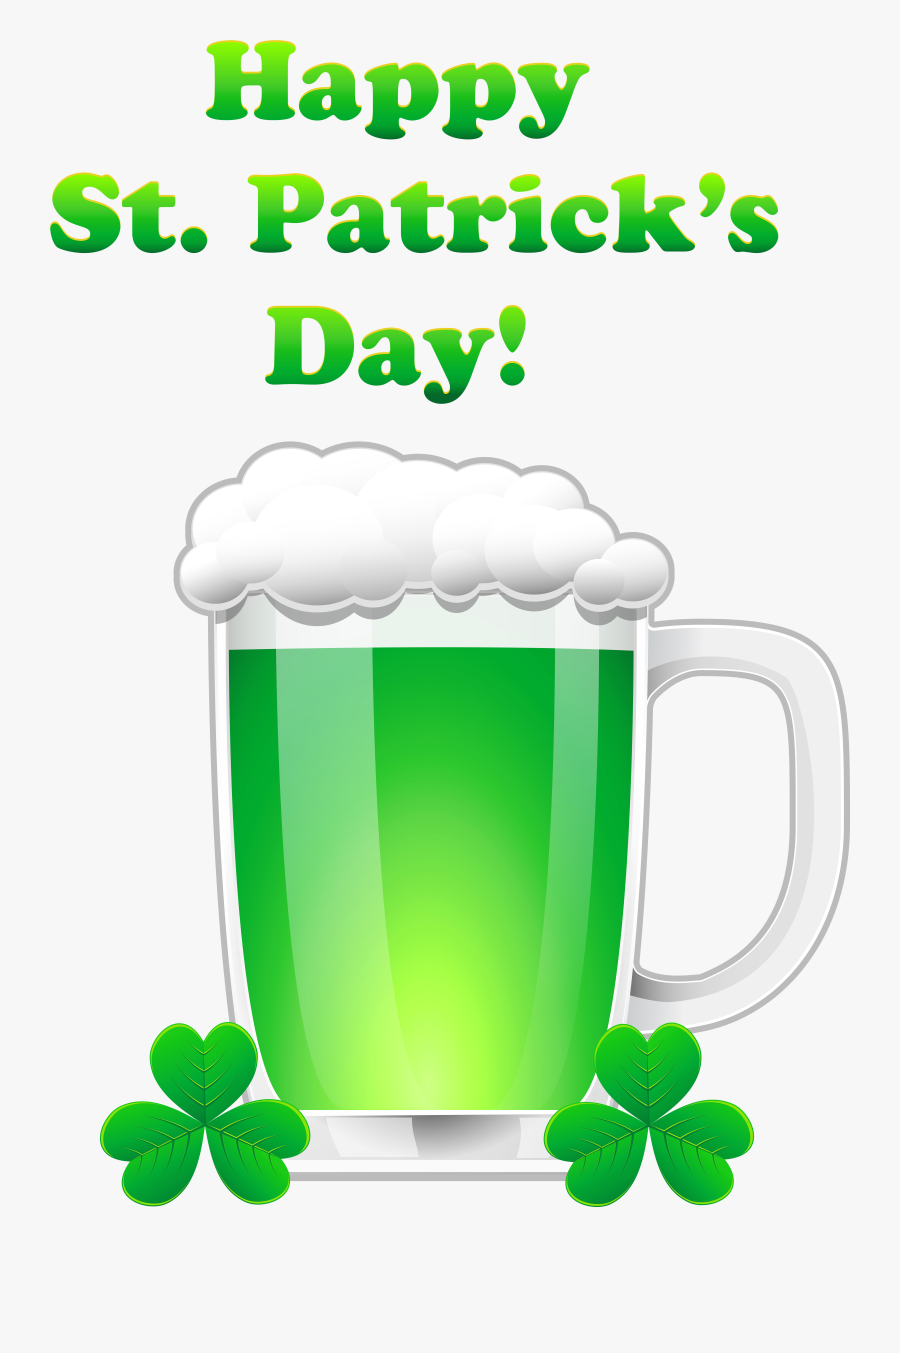 Transparent St Patricks Day Clipart - Animated Saint Patrick's Day, Transparent Clipart